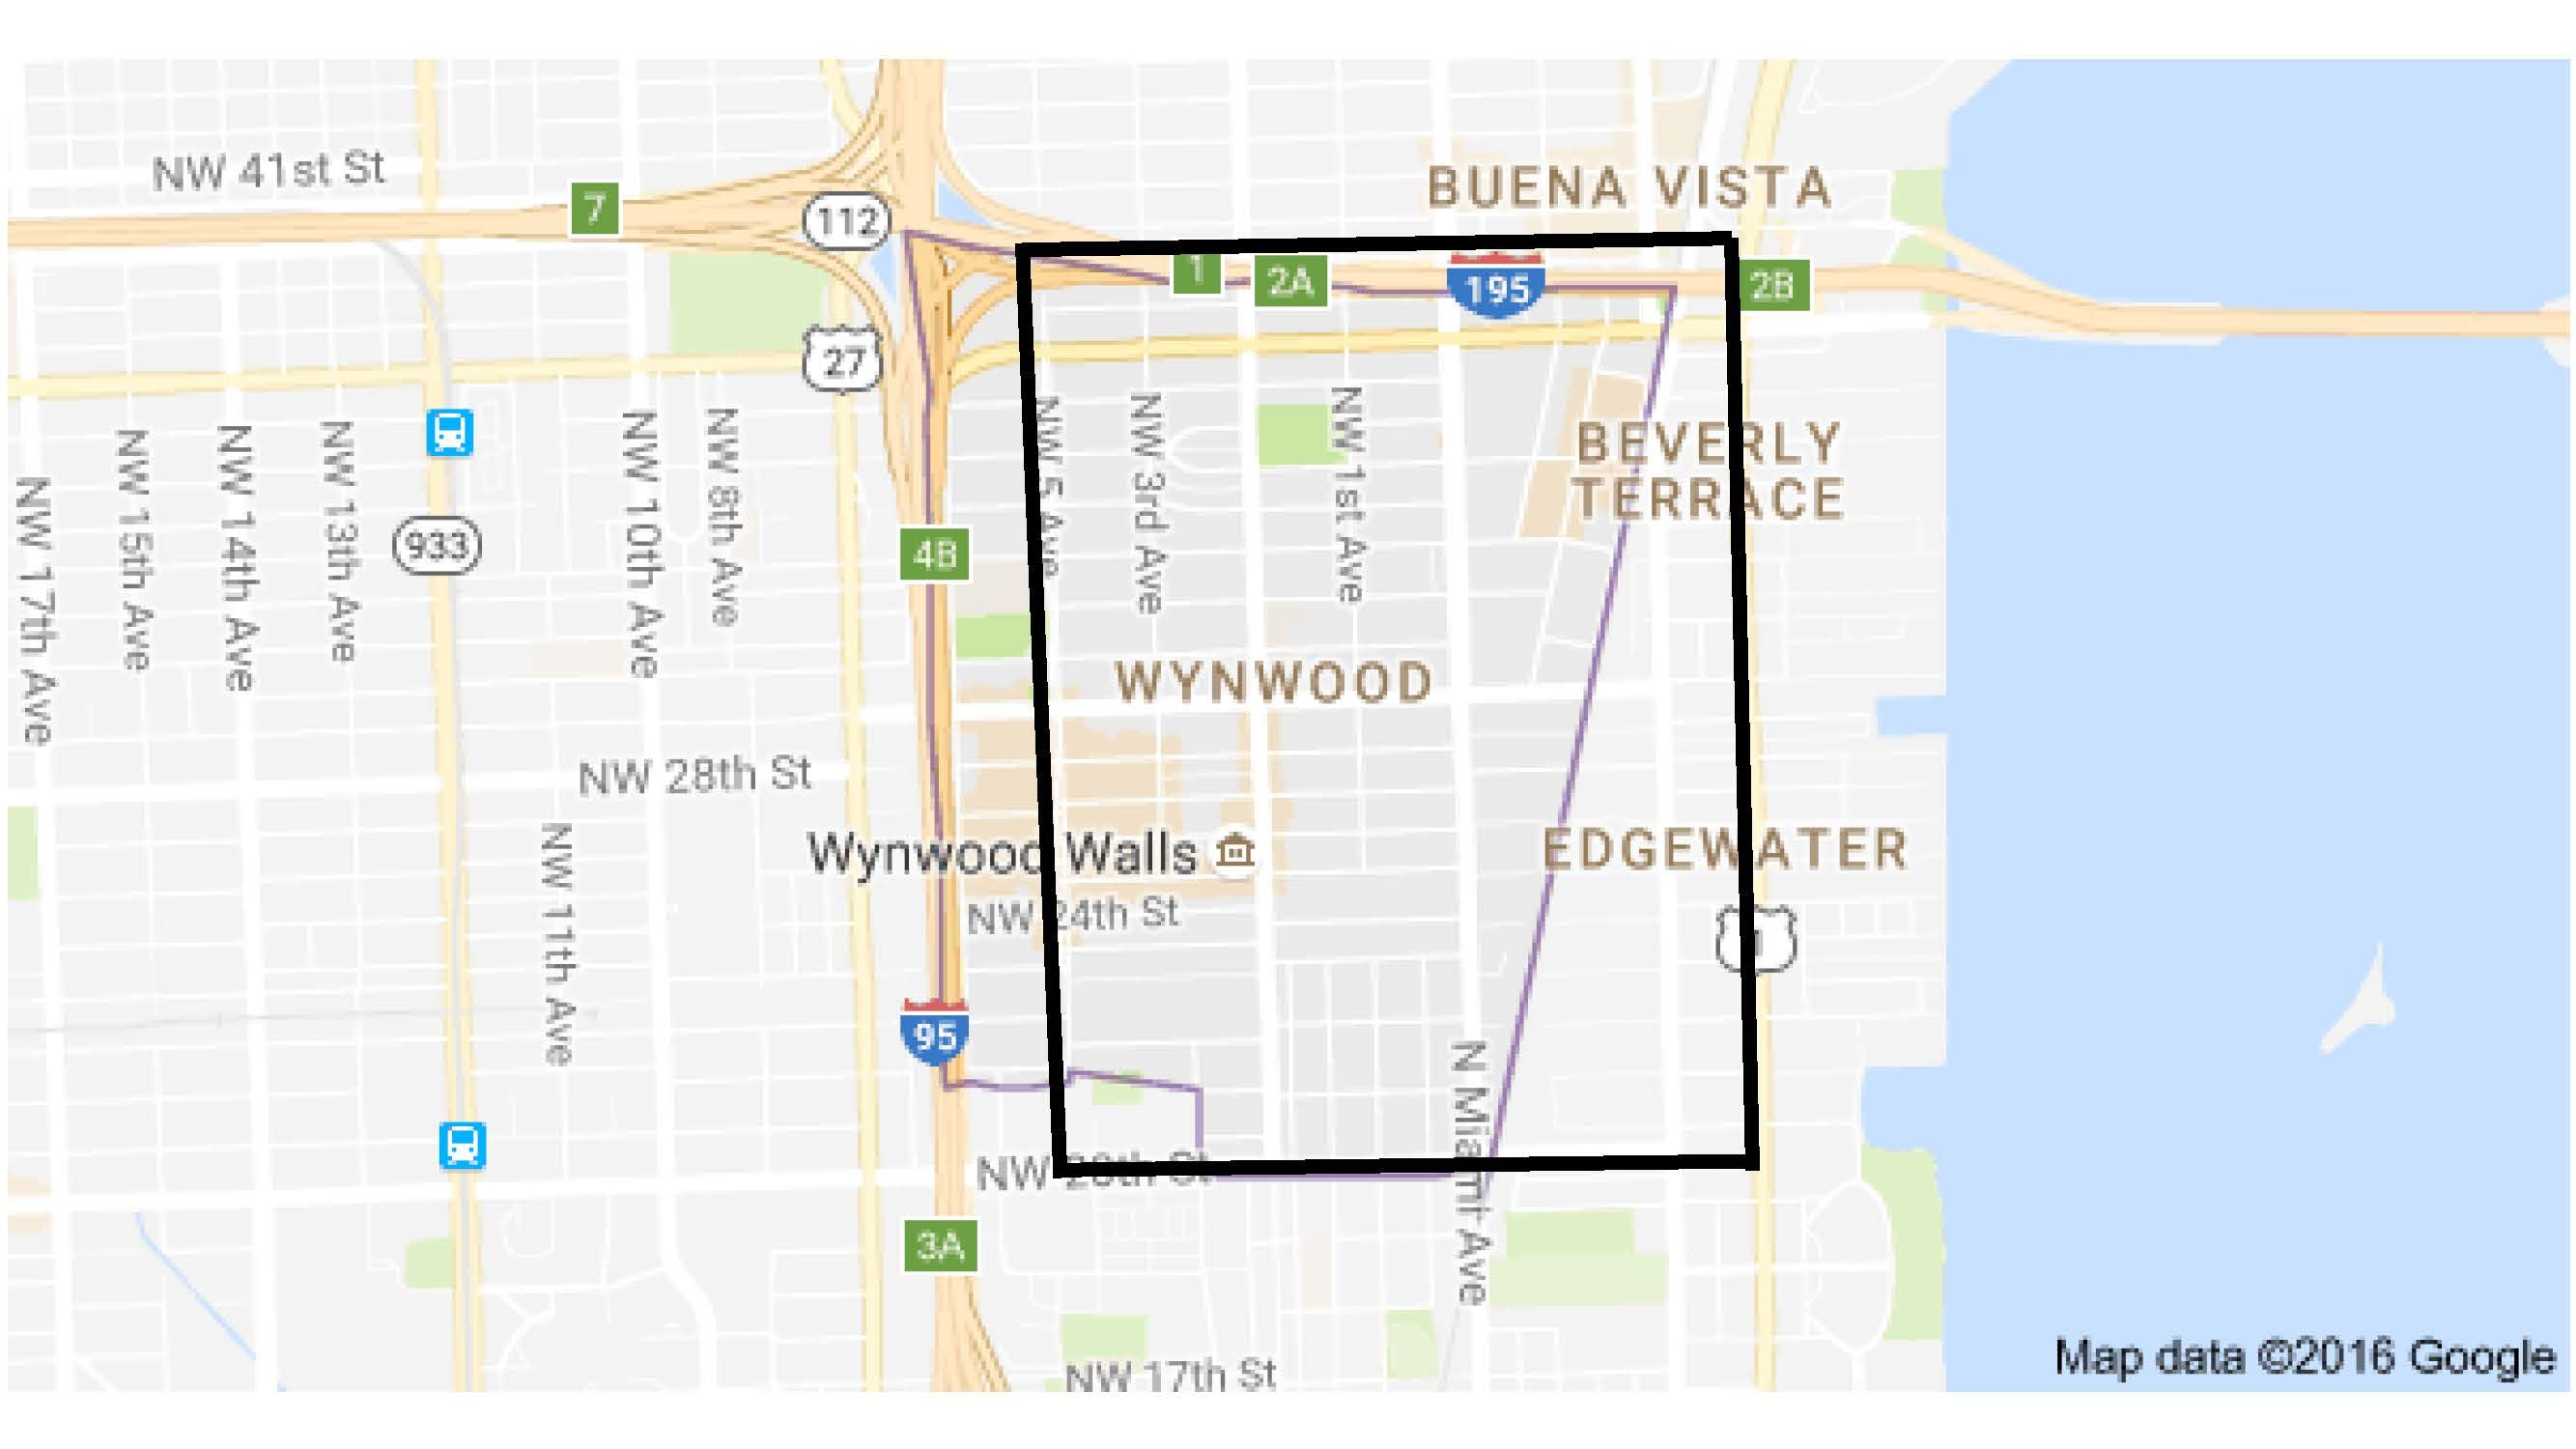 The area of Miami-Dade county where officials believe mosquitoes may be actively transmitting Zika.